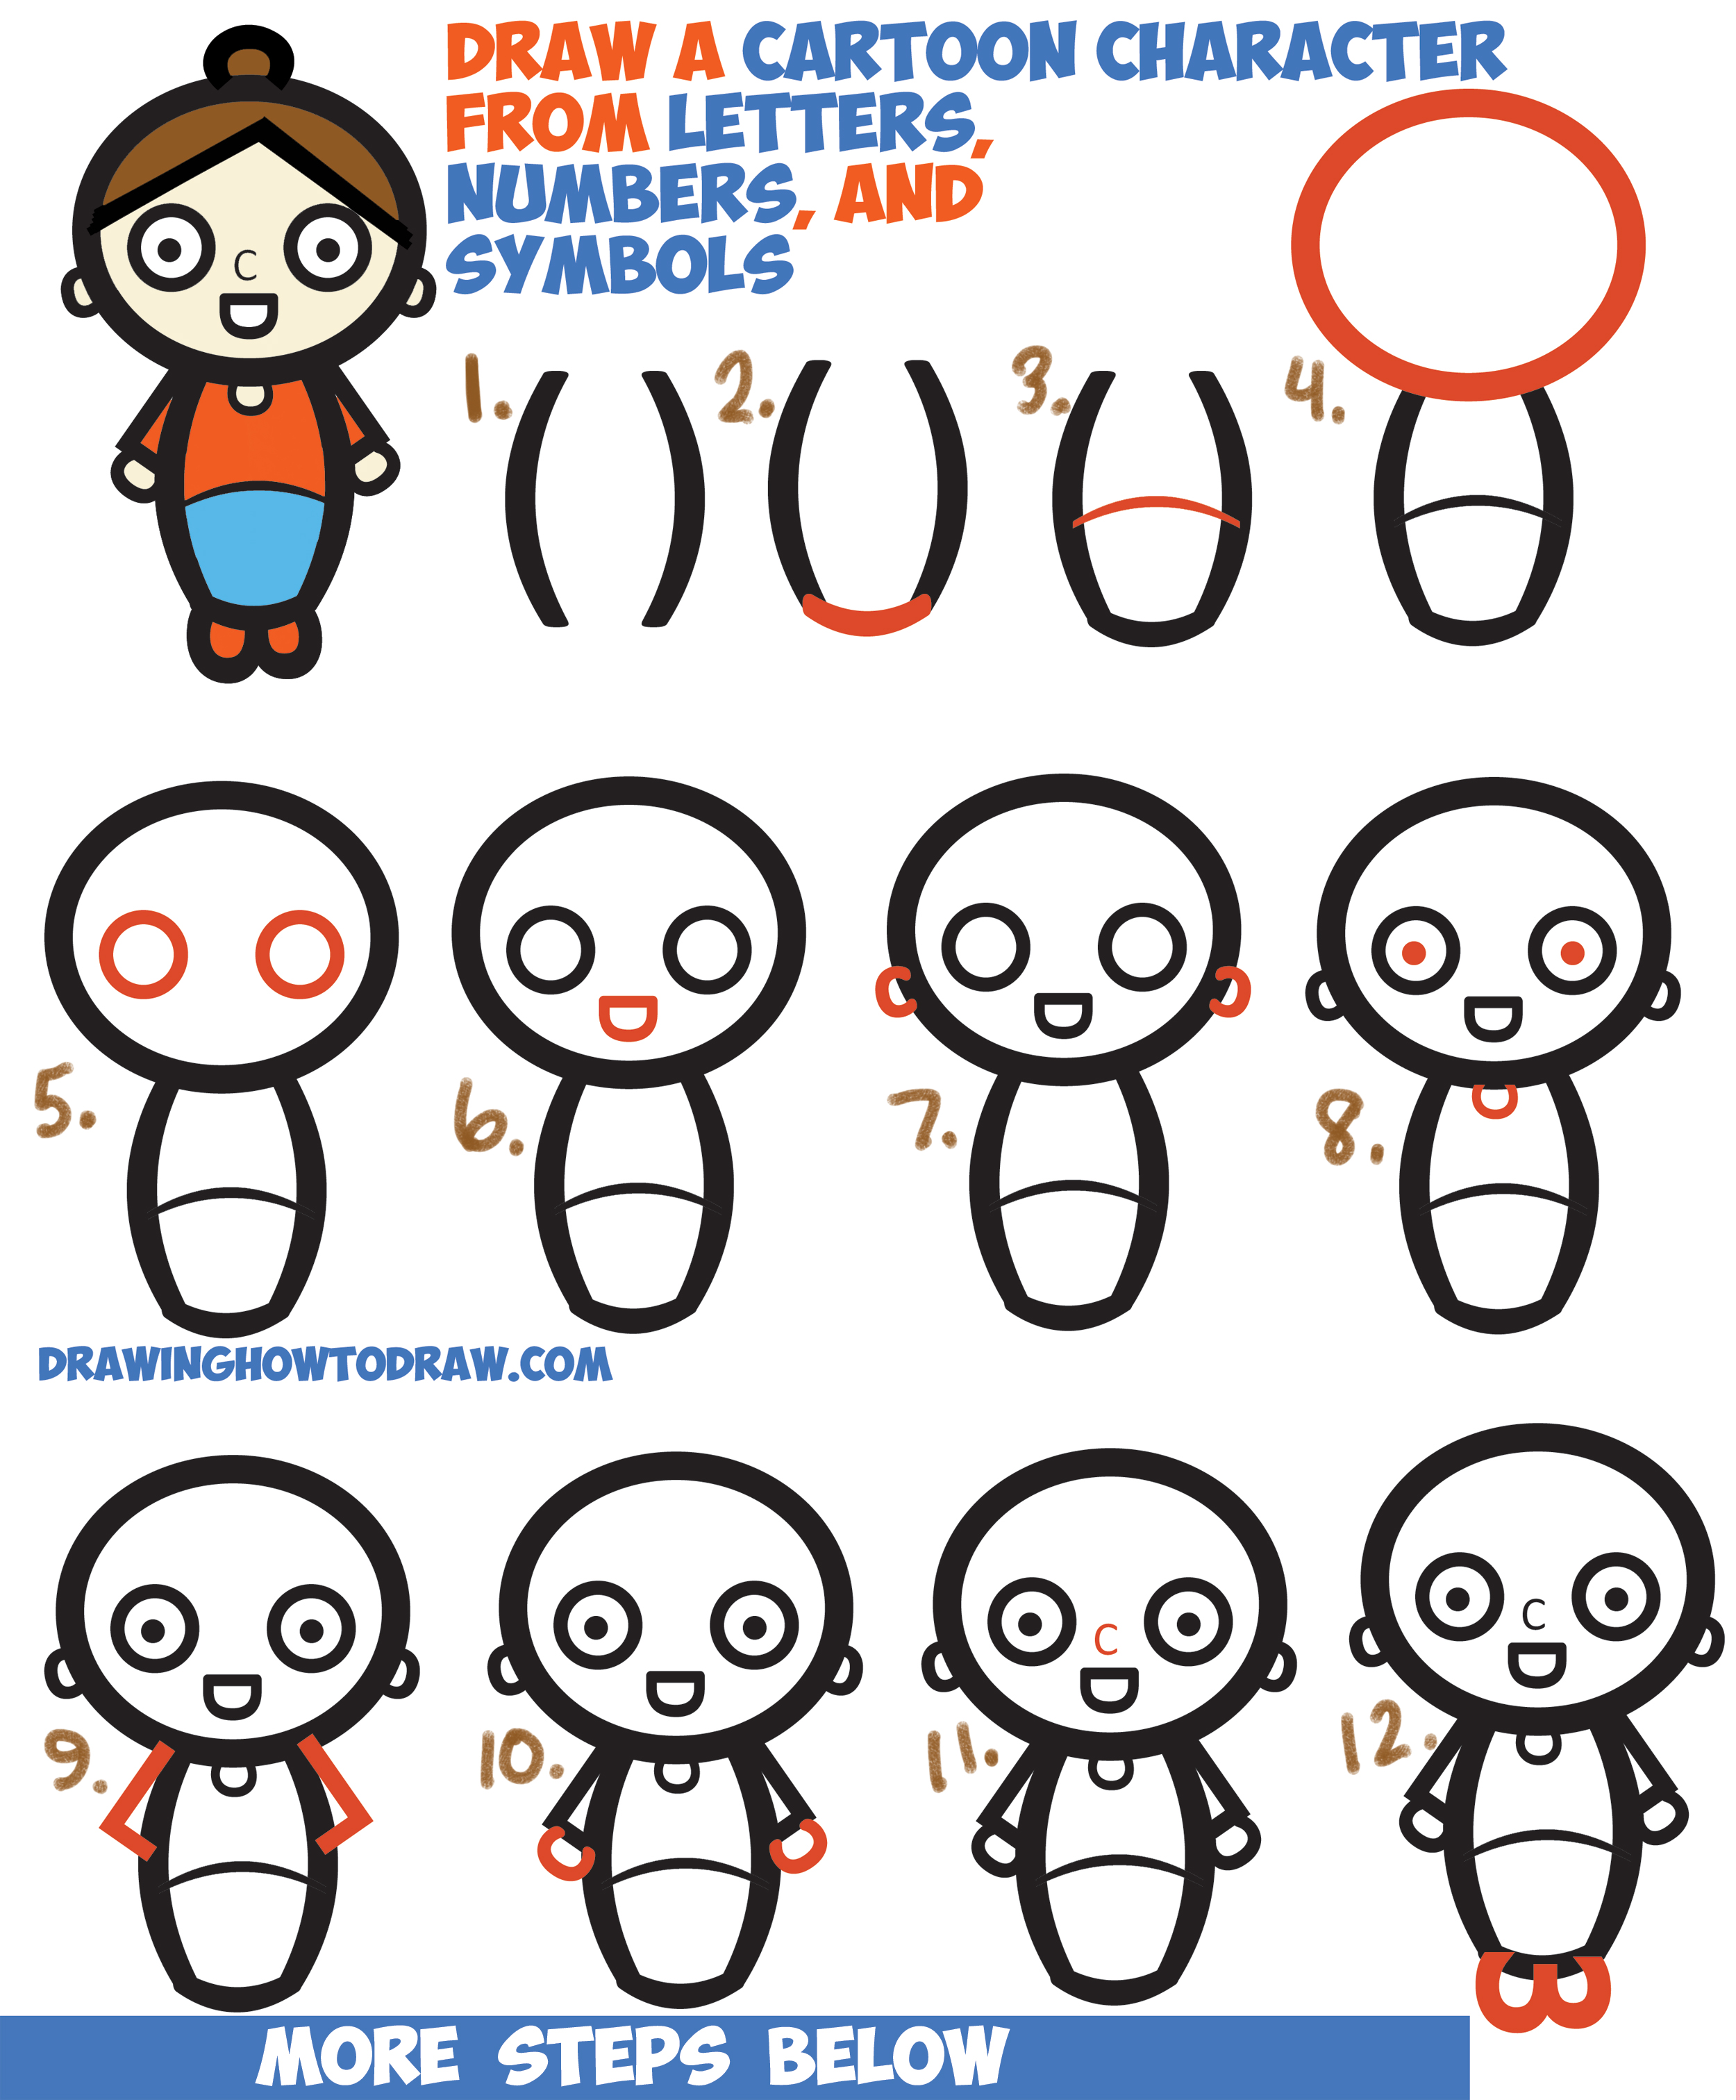 How To Draw A Cartoon Woman Character From Letters Numbers Symbols